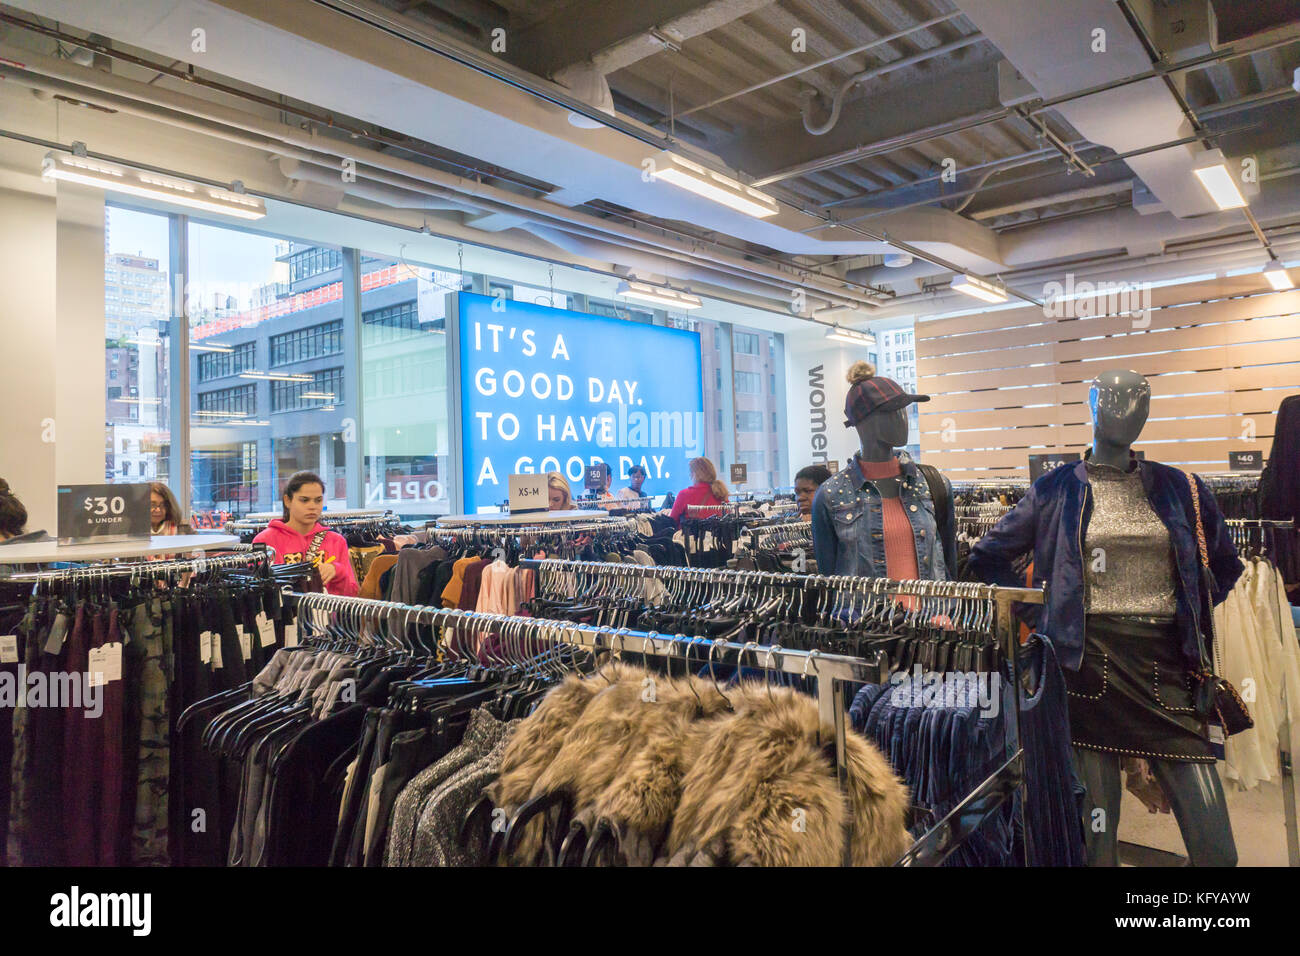 74ab393ad Excited shoppers crowd the new Nordstrom Rack off-price store in the Herald  Square area